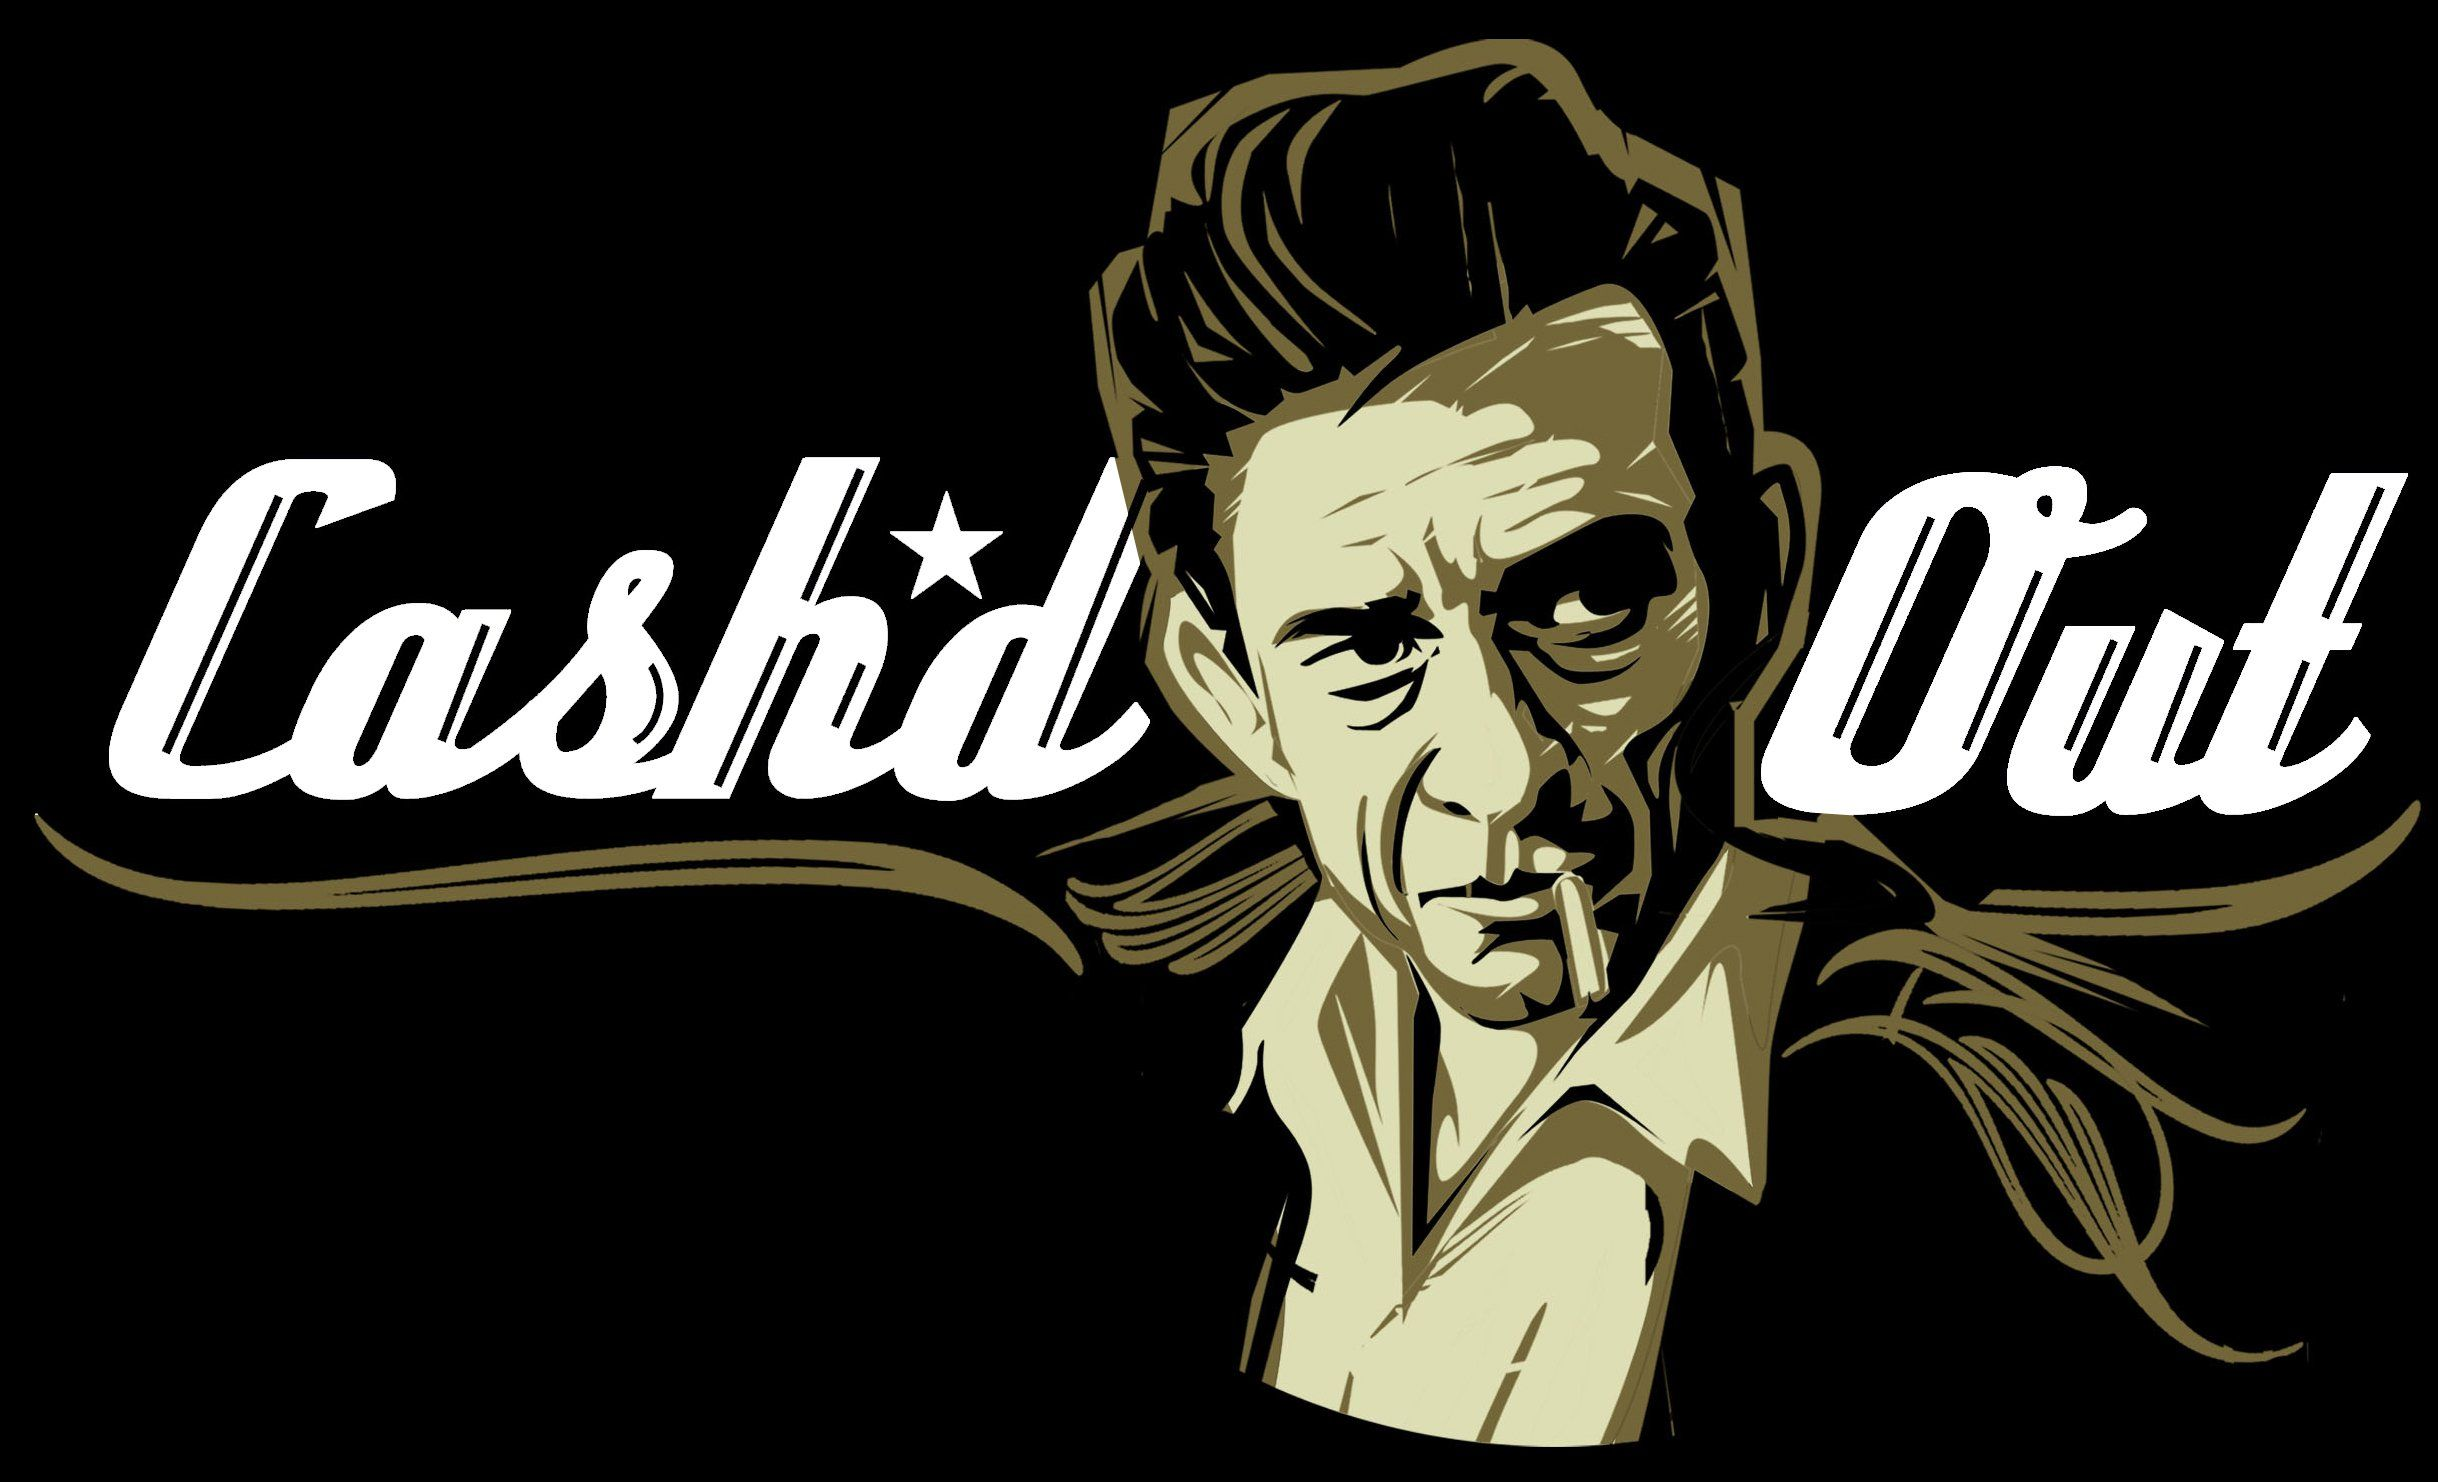 johnny-cash-wallpaper